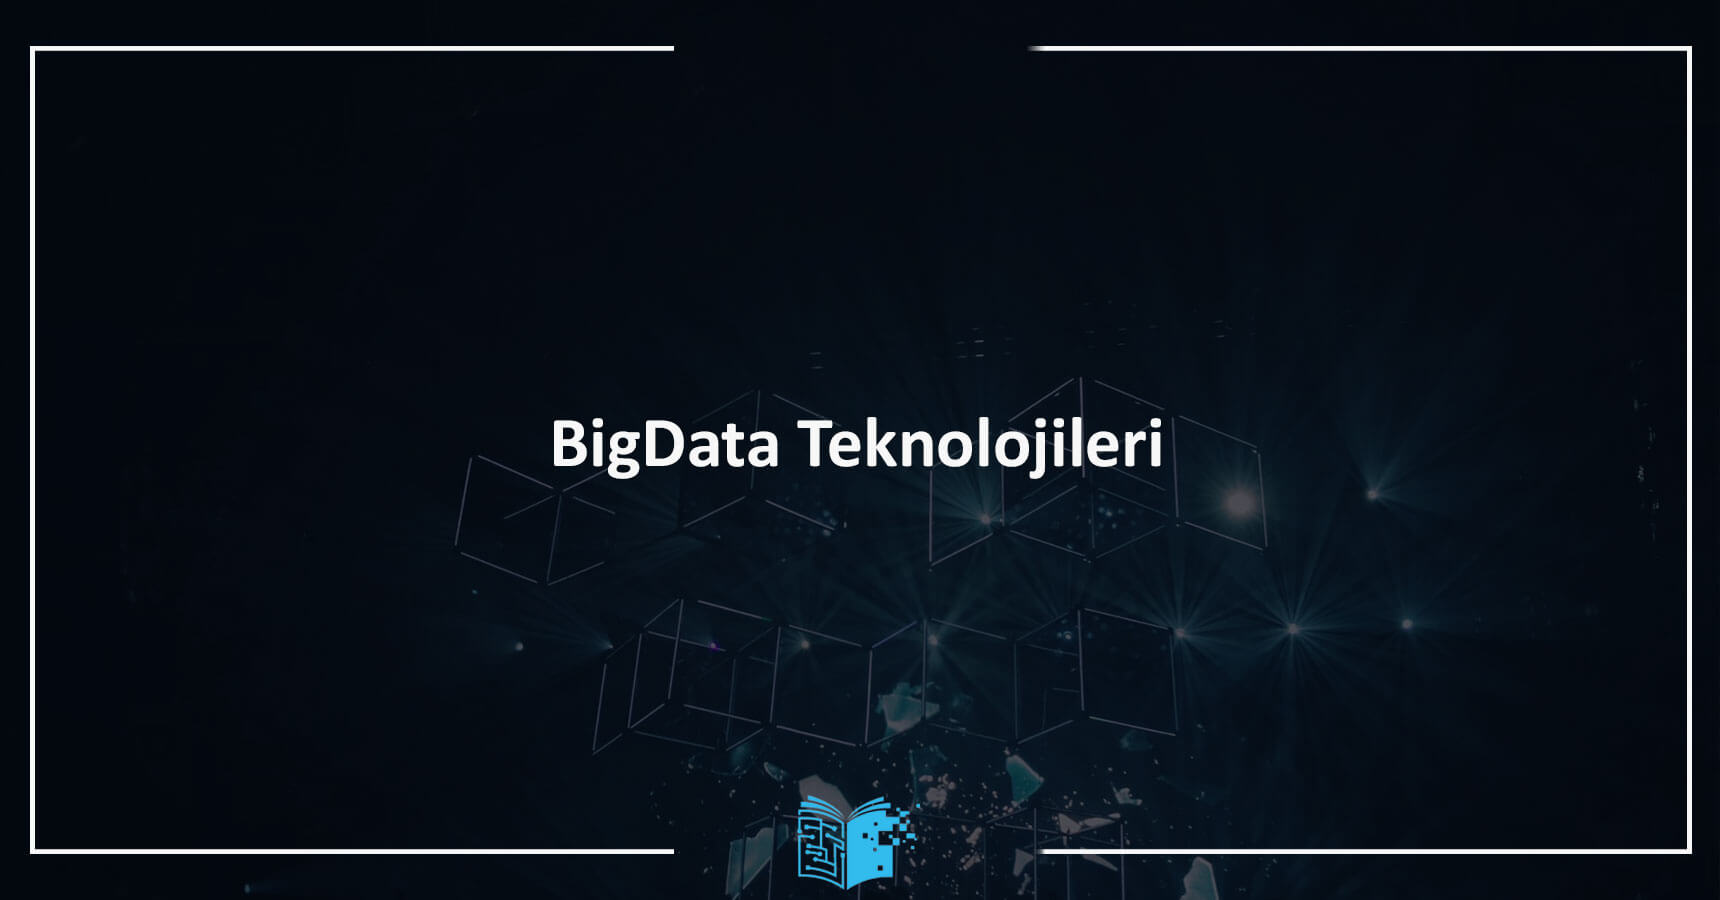 Big Data Teknolojileri